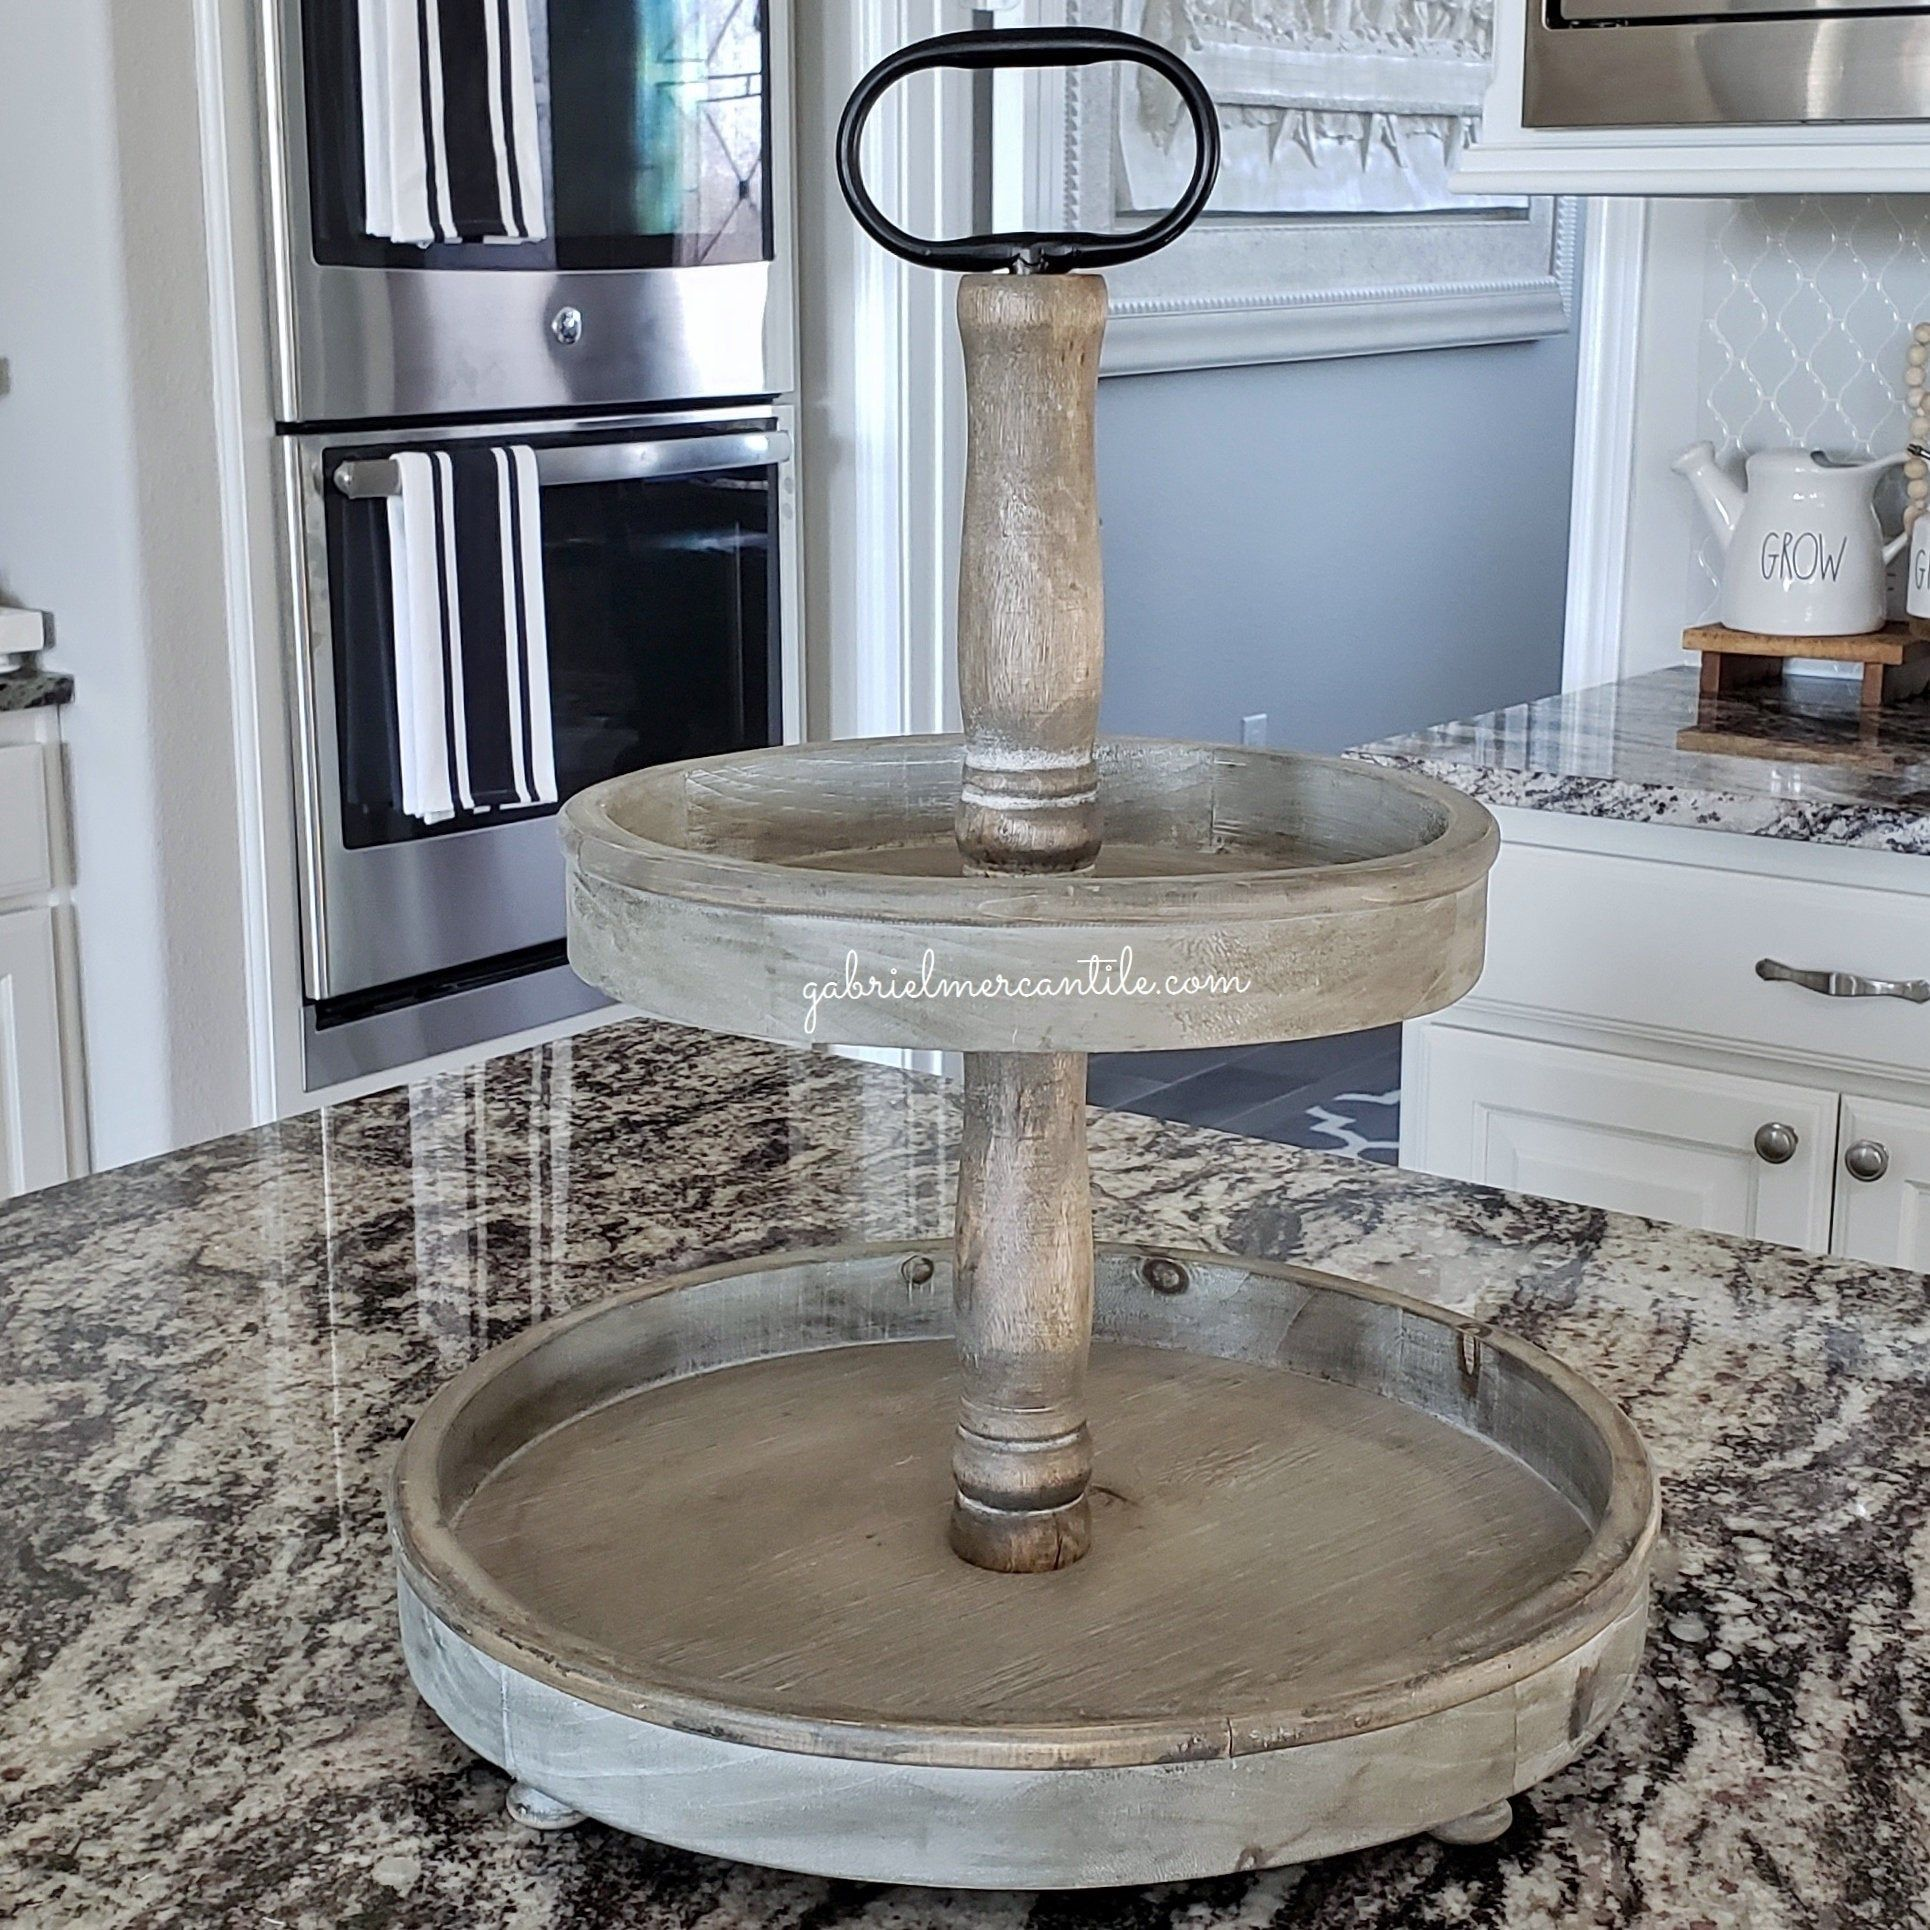 Large Round Rustic Wood 2 Tier Tray Stand In Natural Wood Wood Riser Wood Stand Wood Tray Wood Pedestal Farmhous Wood Pedestal Tiered Tray Stand Wood Tray